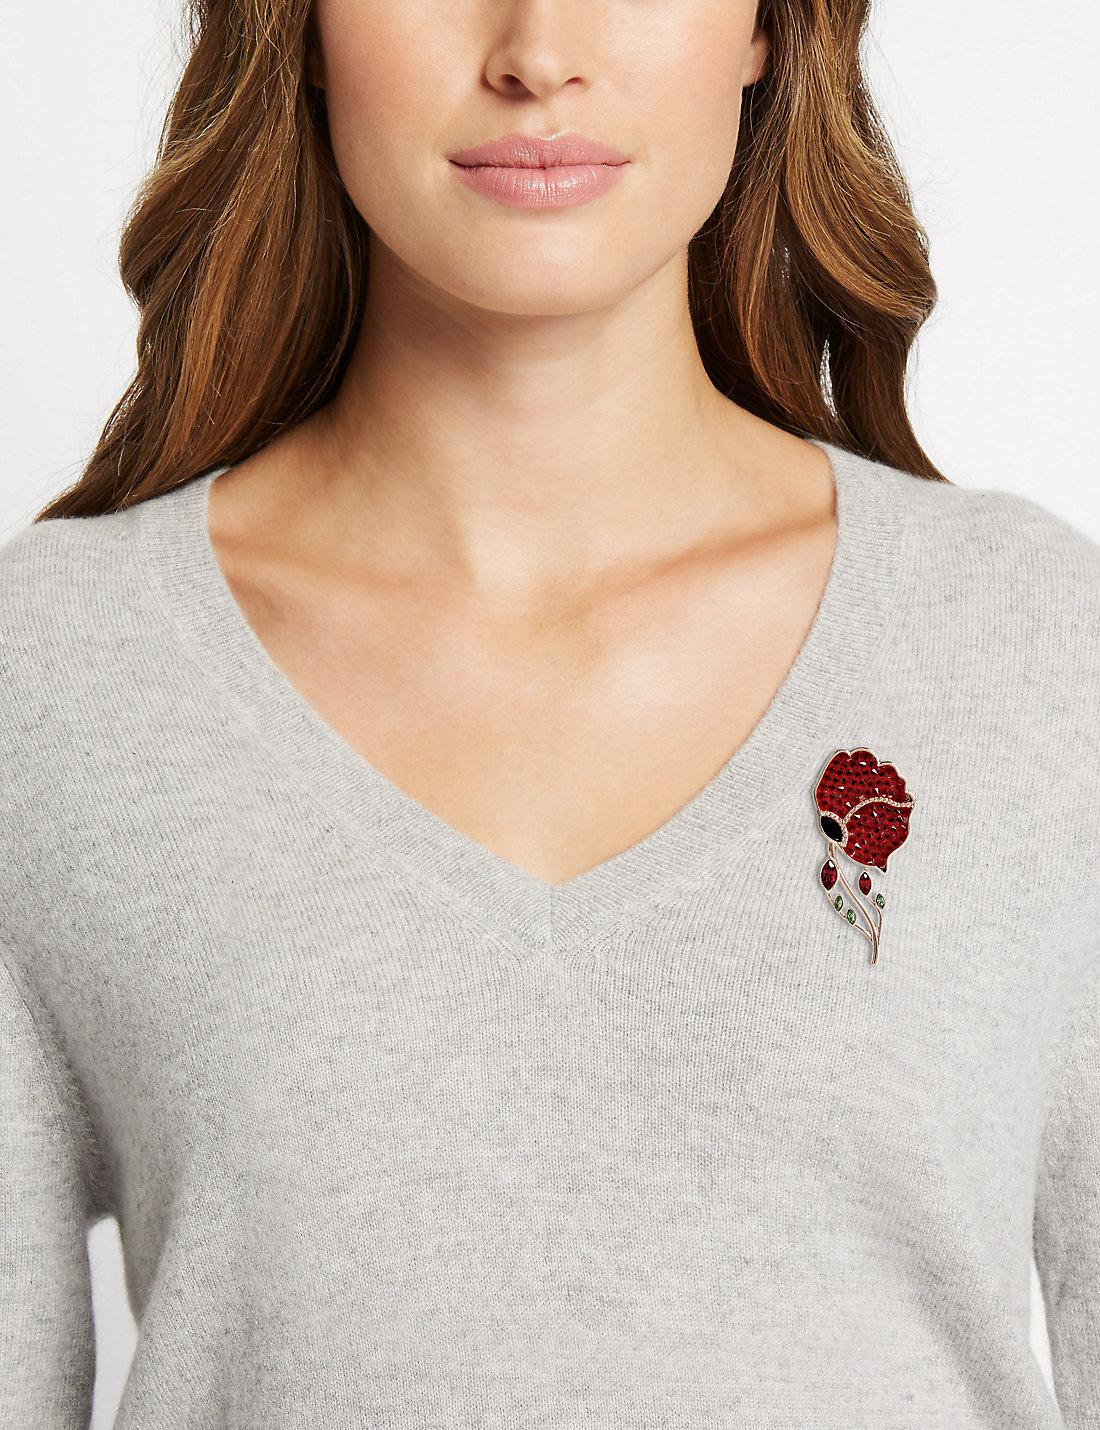 Marks & Spencer The Poppy Collection® Poppy Brooch With Swarovski